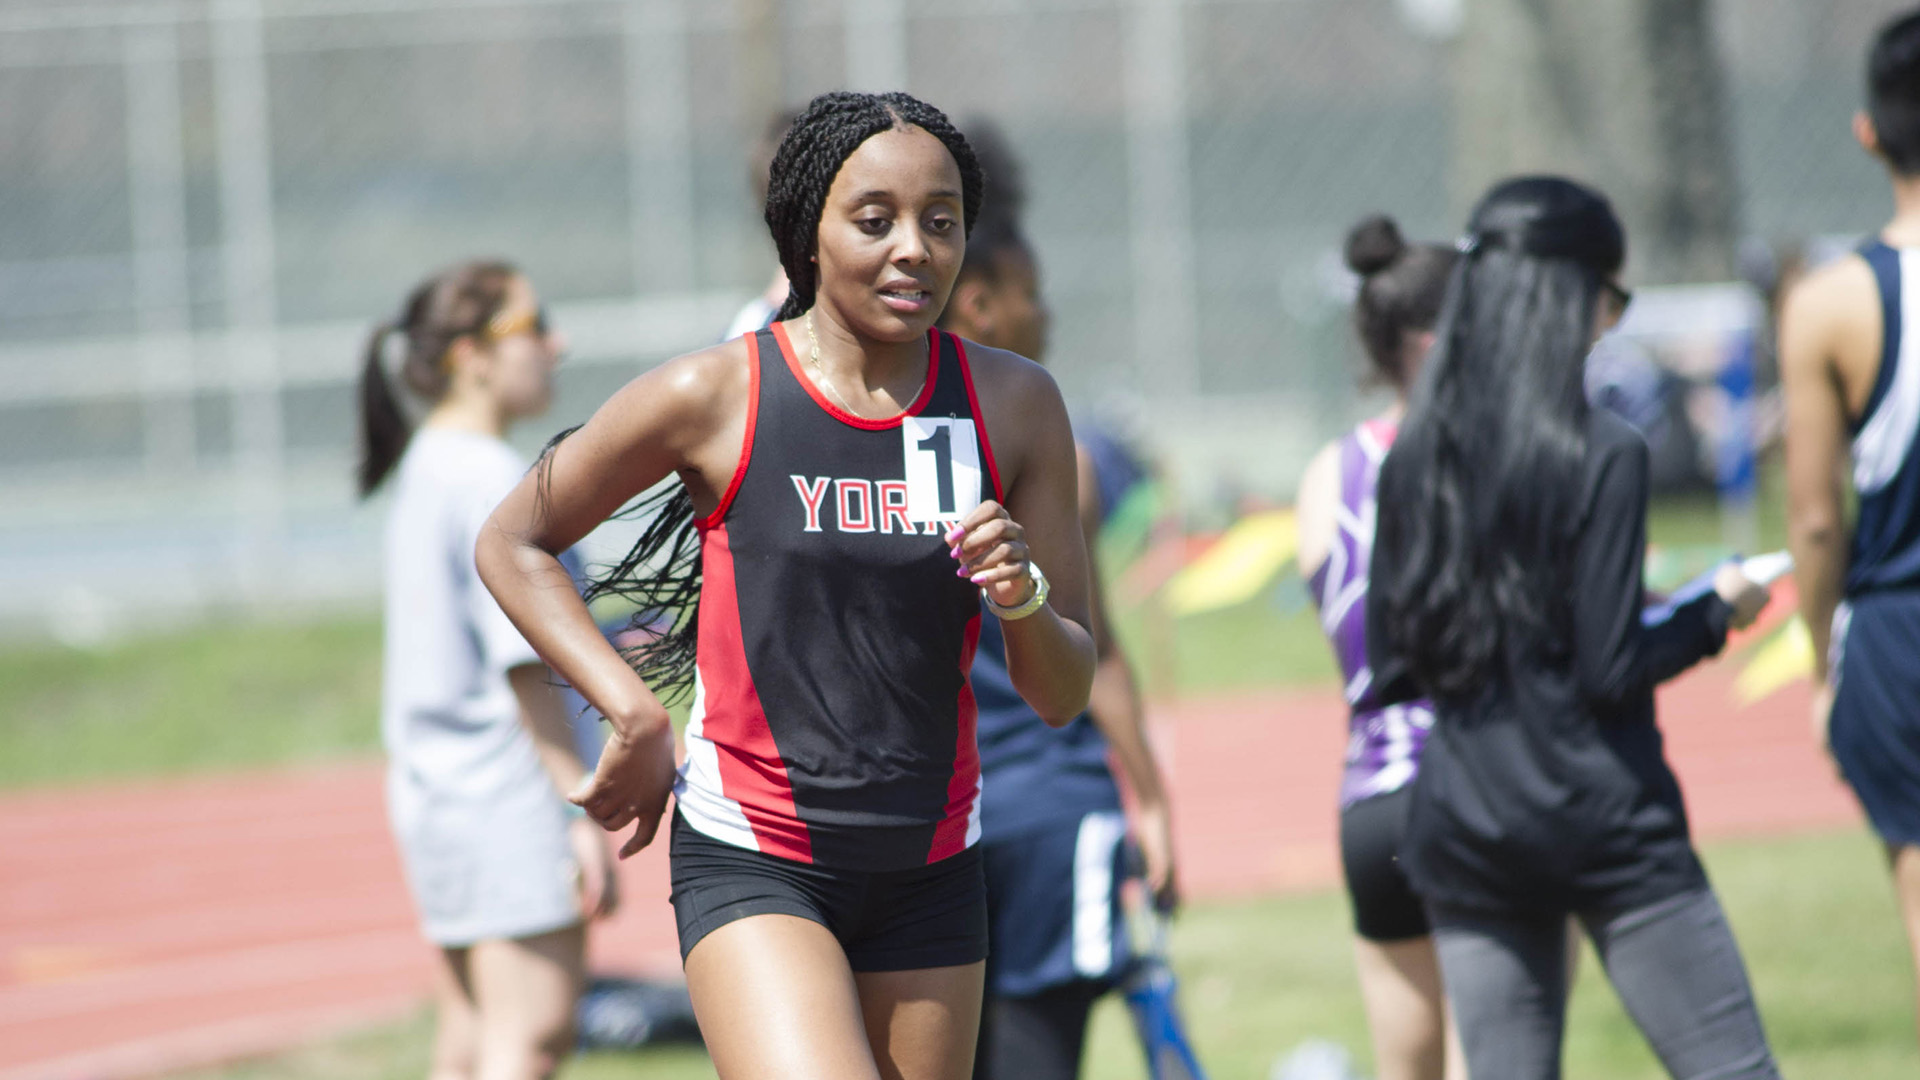 19db3fcc Two More Cardinals Qualify for ECACs at Lions Invitational - York ...